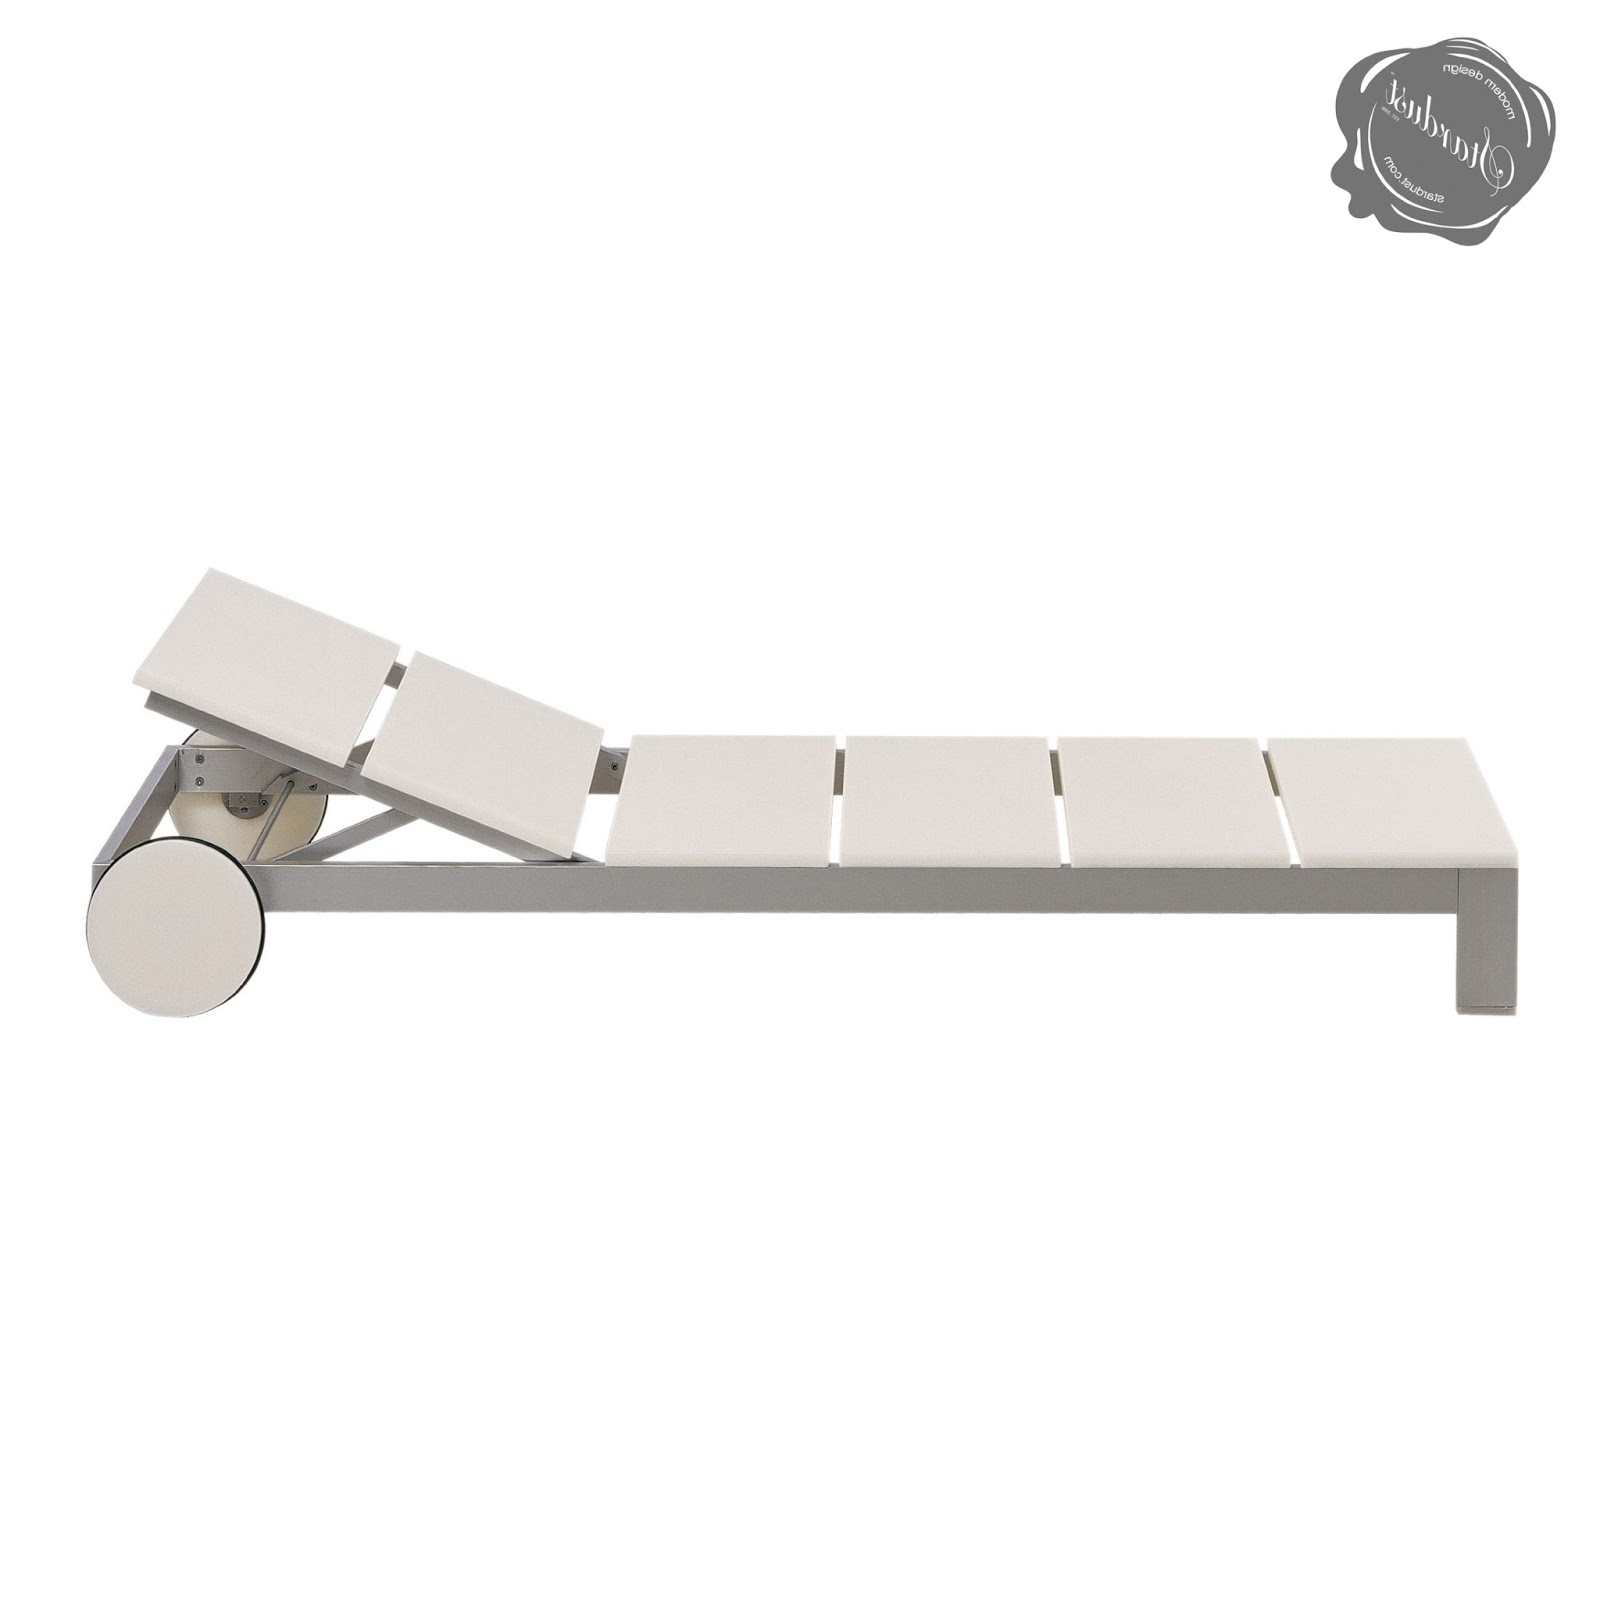 Most Up To Date Modern Outdoor: Na Xemena Furniture Tumbonagandia Blasco Pertaining To Modern Outdoor Chaise Lounges (View 9 of 15)